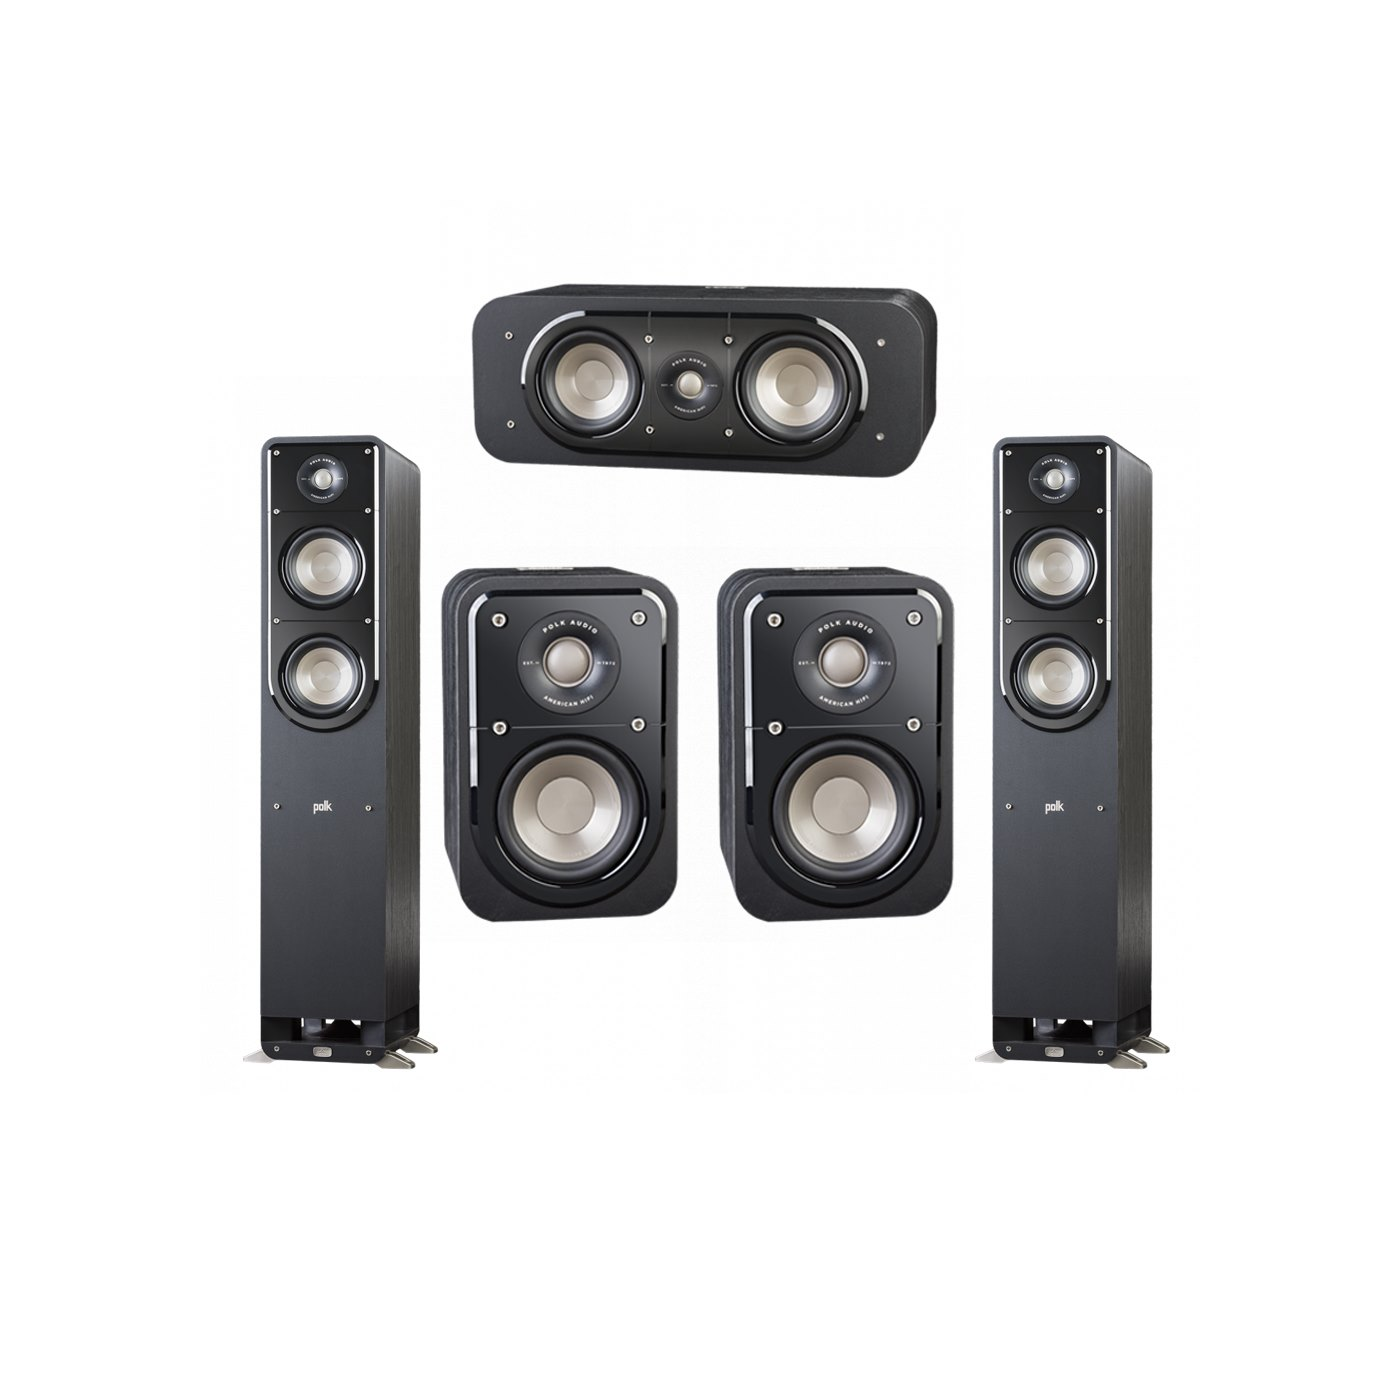 Polk Audio Signature 5.0 System with 2 S50 Tower Speaker, 1 Polk S30 Center Speaker, 2 Polk S10 Surround Speaker